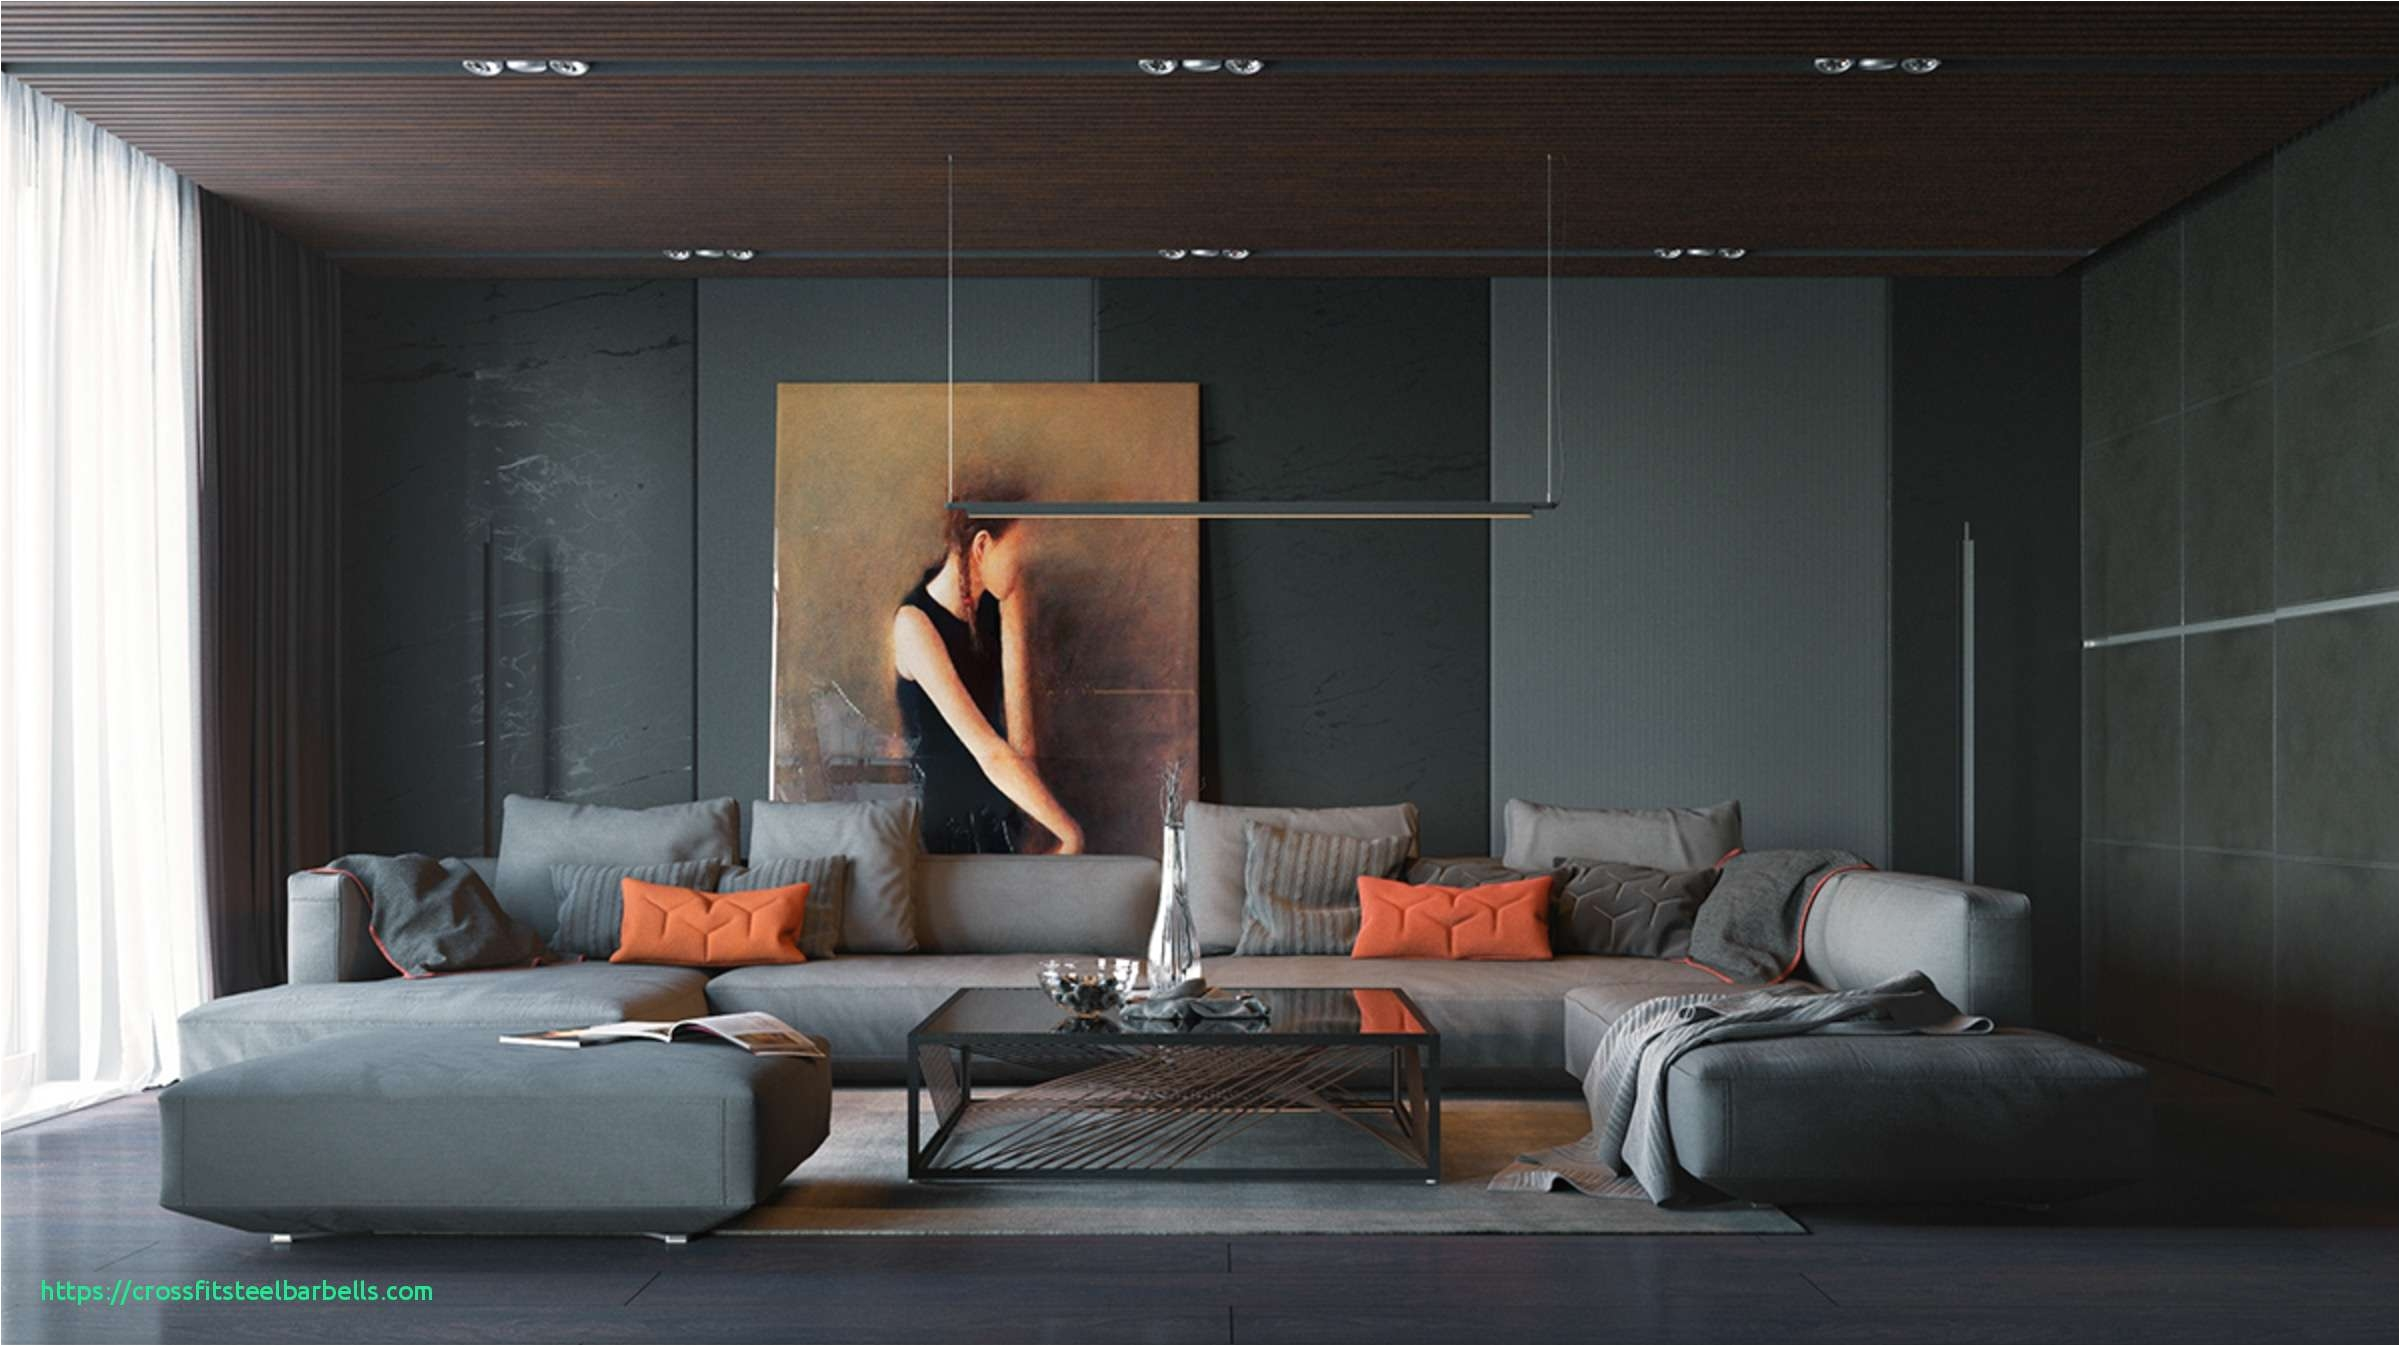 Top 10 Interior Design Schools In south Africa Awesome Interior Decoration Of Drawing Rooms Pictures Cross Fit